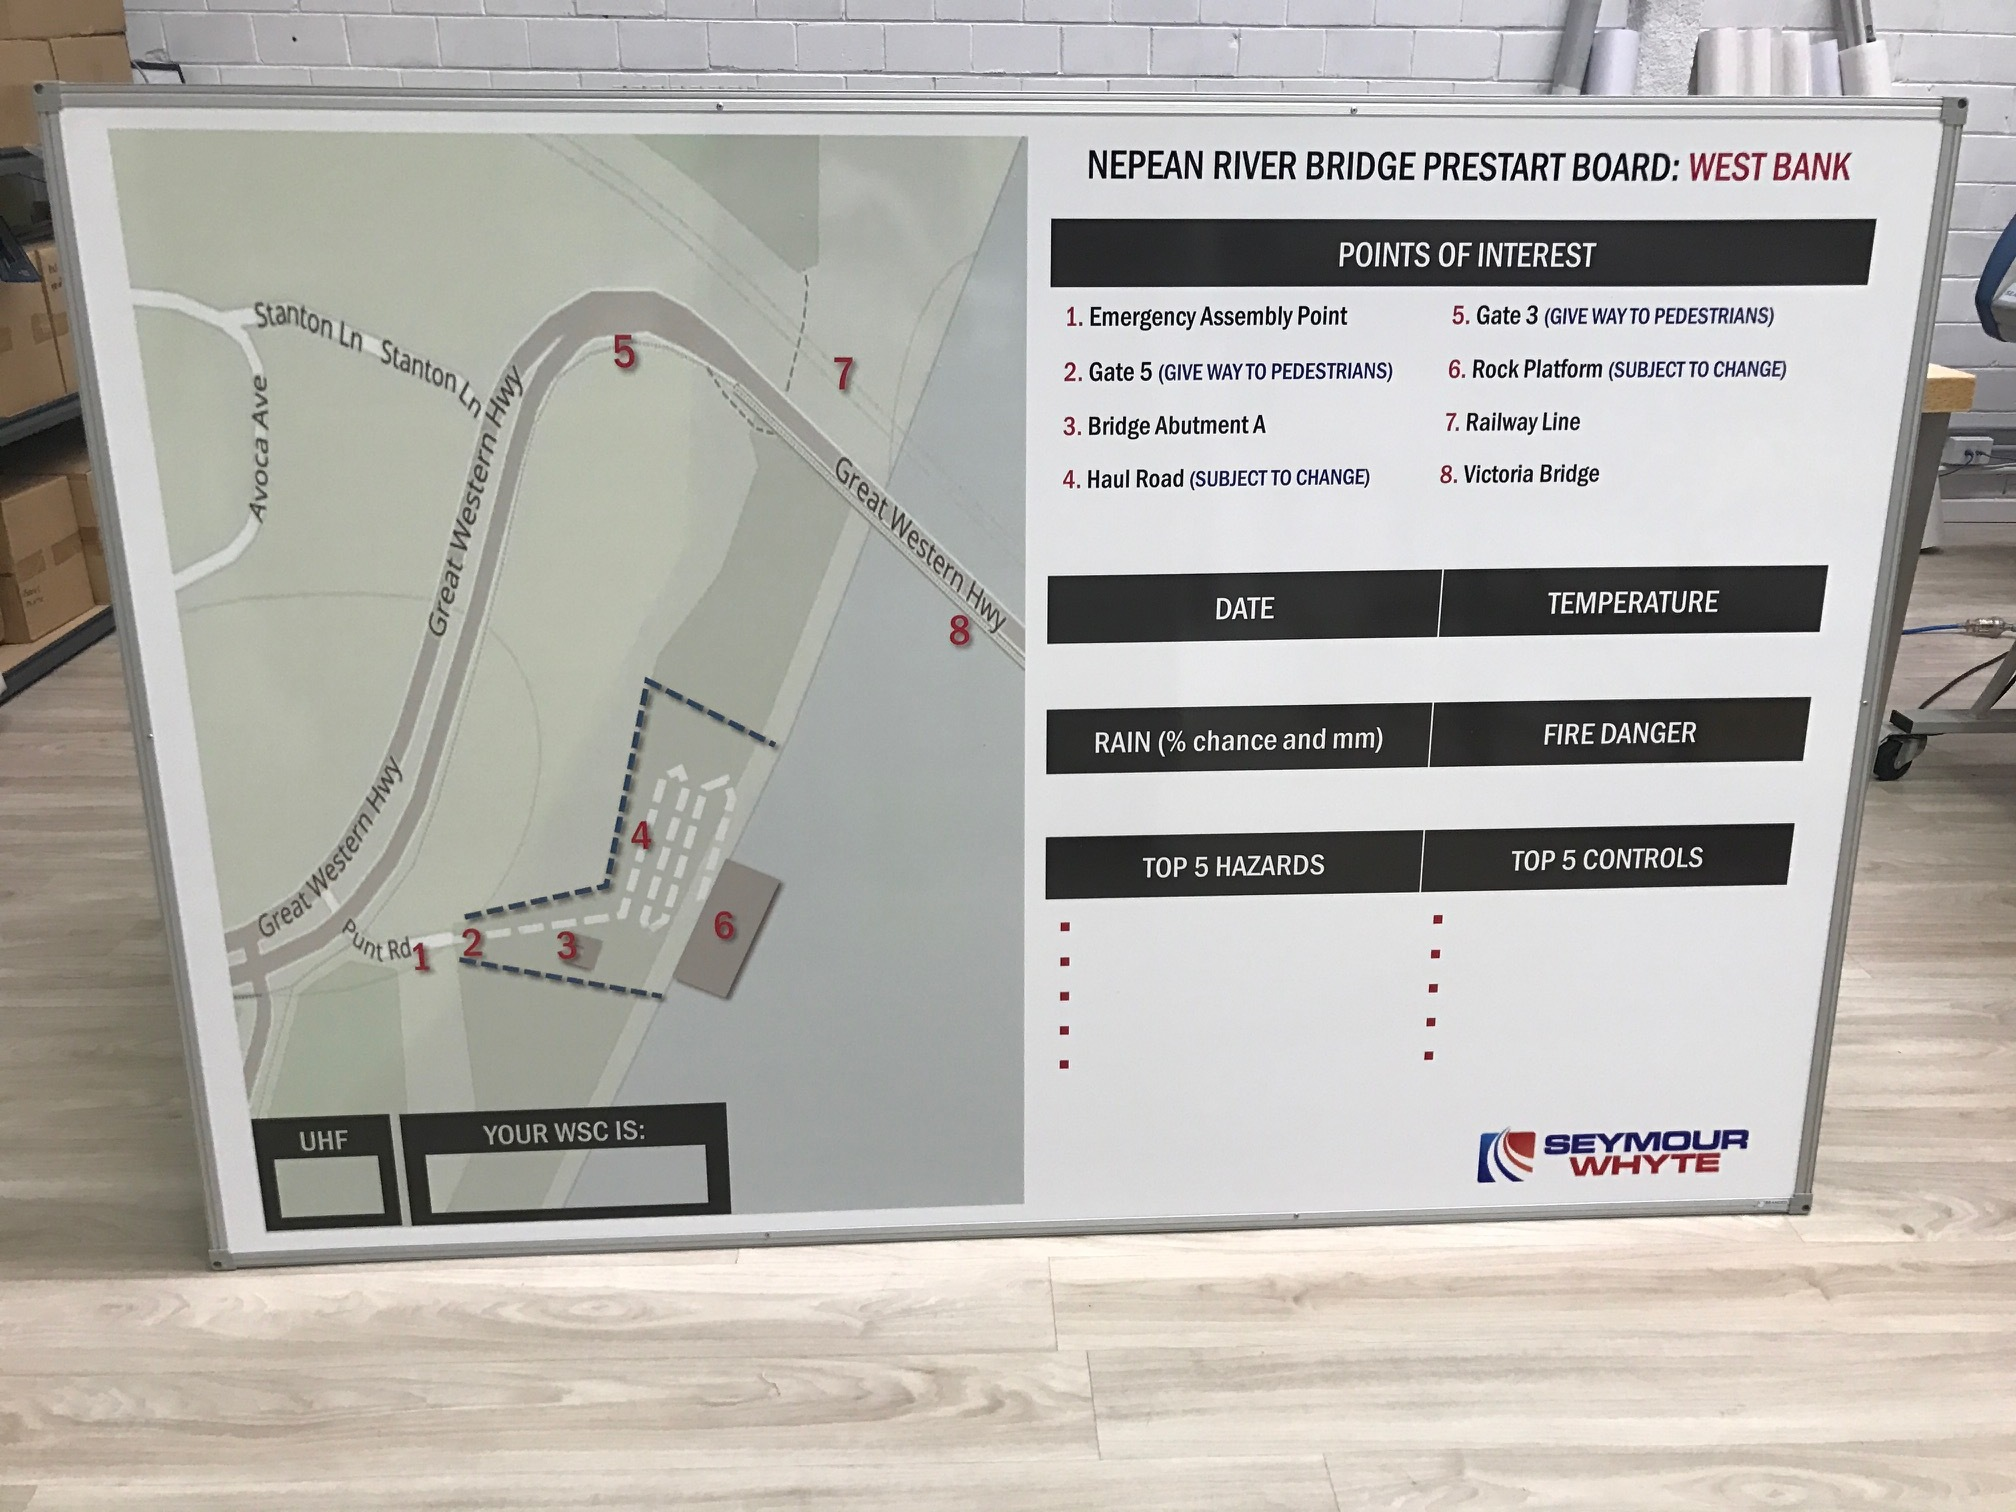 PreStart board with site map - Seymour Whyte #seymourwhyte